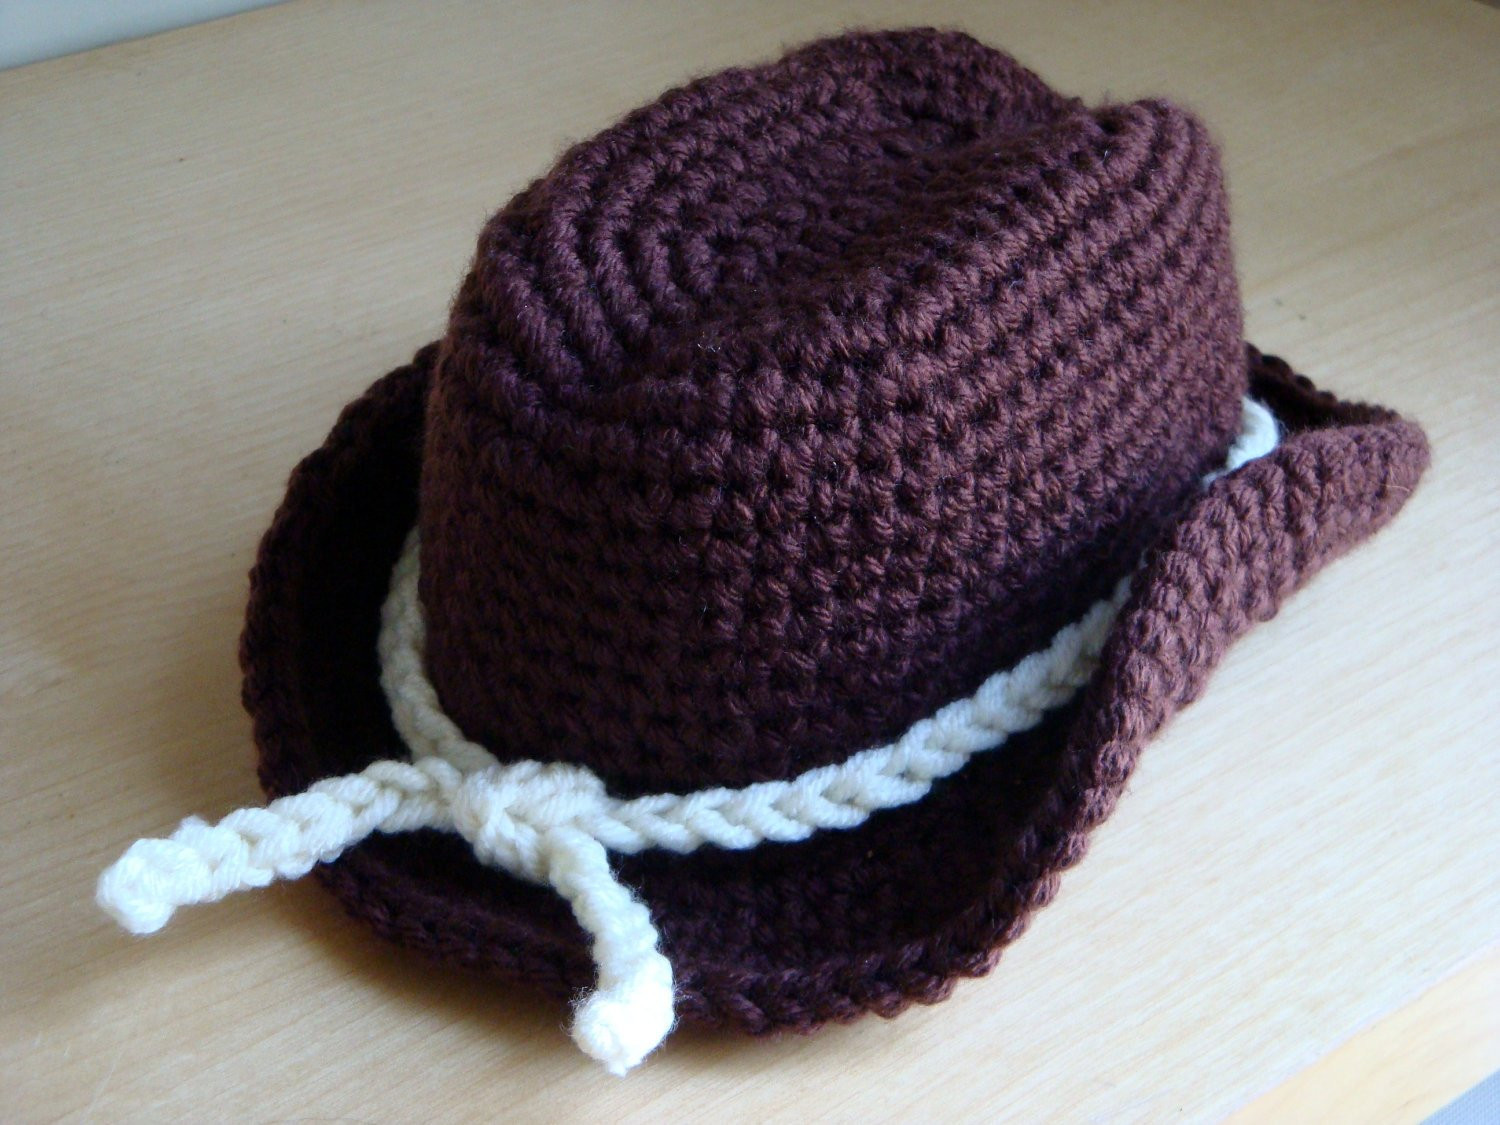 Crochet Baby Cowboy Hat and Boots Pattern Free Awesome Crochet Cowboy Hat Graphy Prop Hat Only Newborn Of Brilliant 40 Ideas Crochet Baby Cowboy Hat and Boots Pattern Free